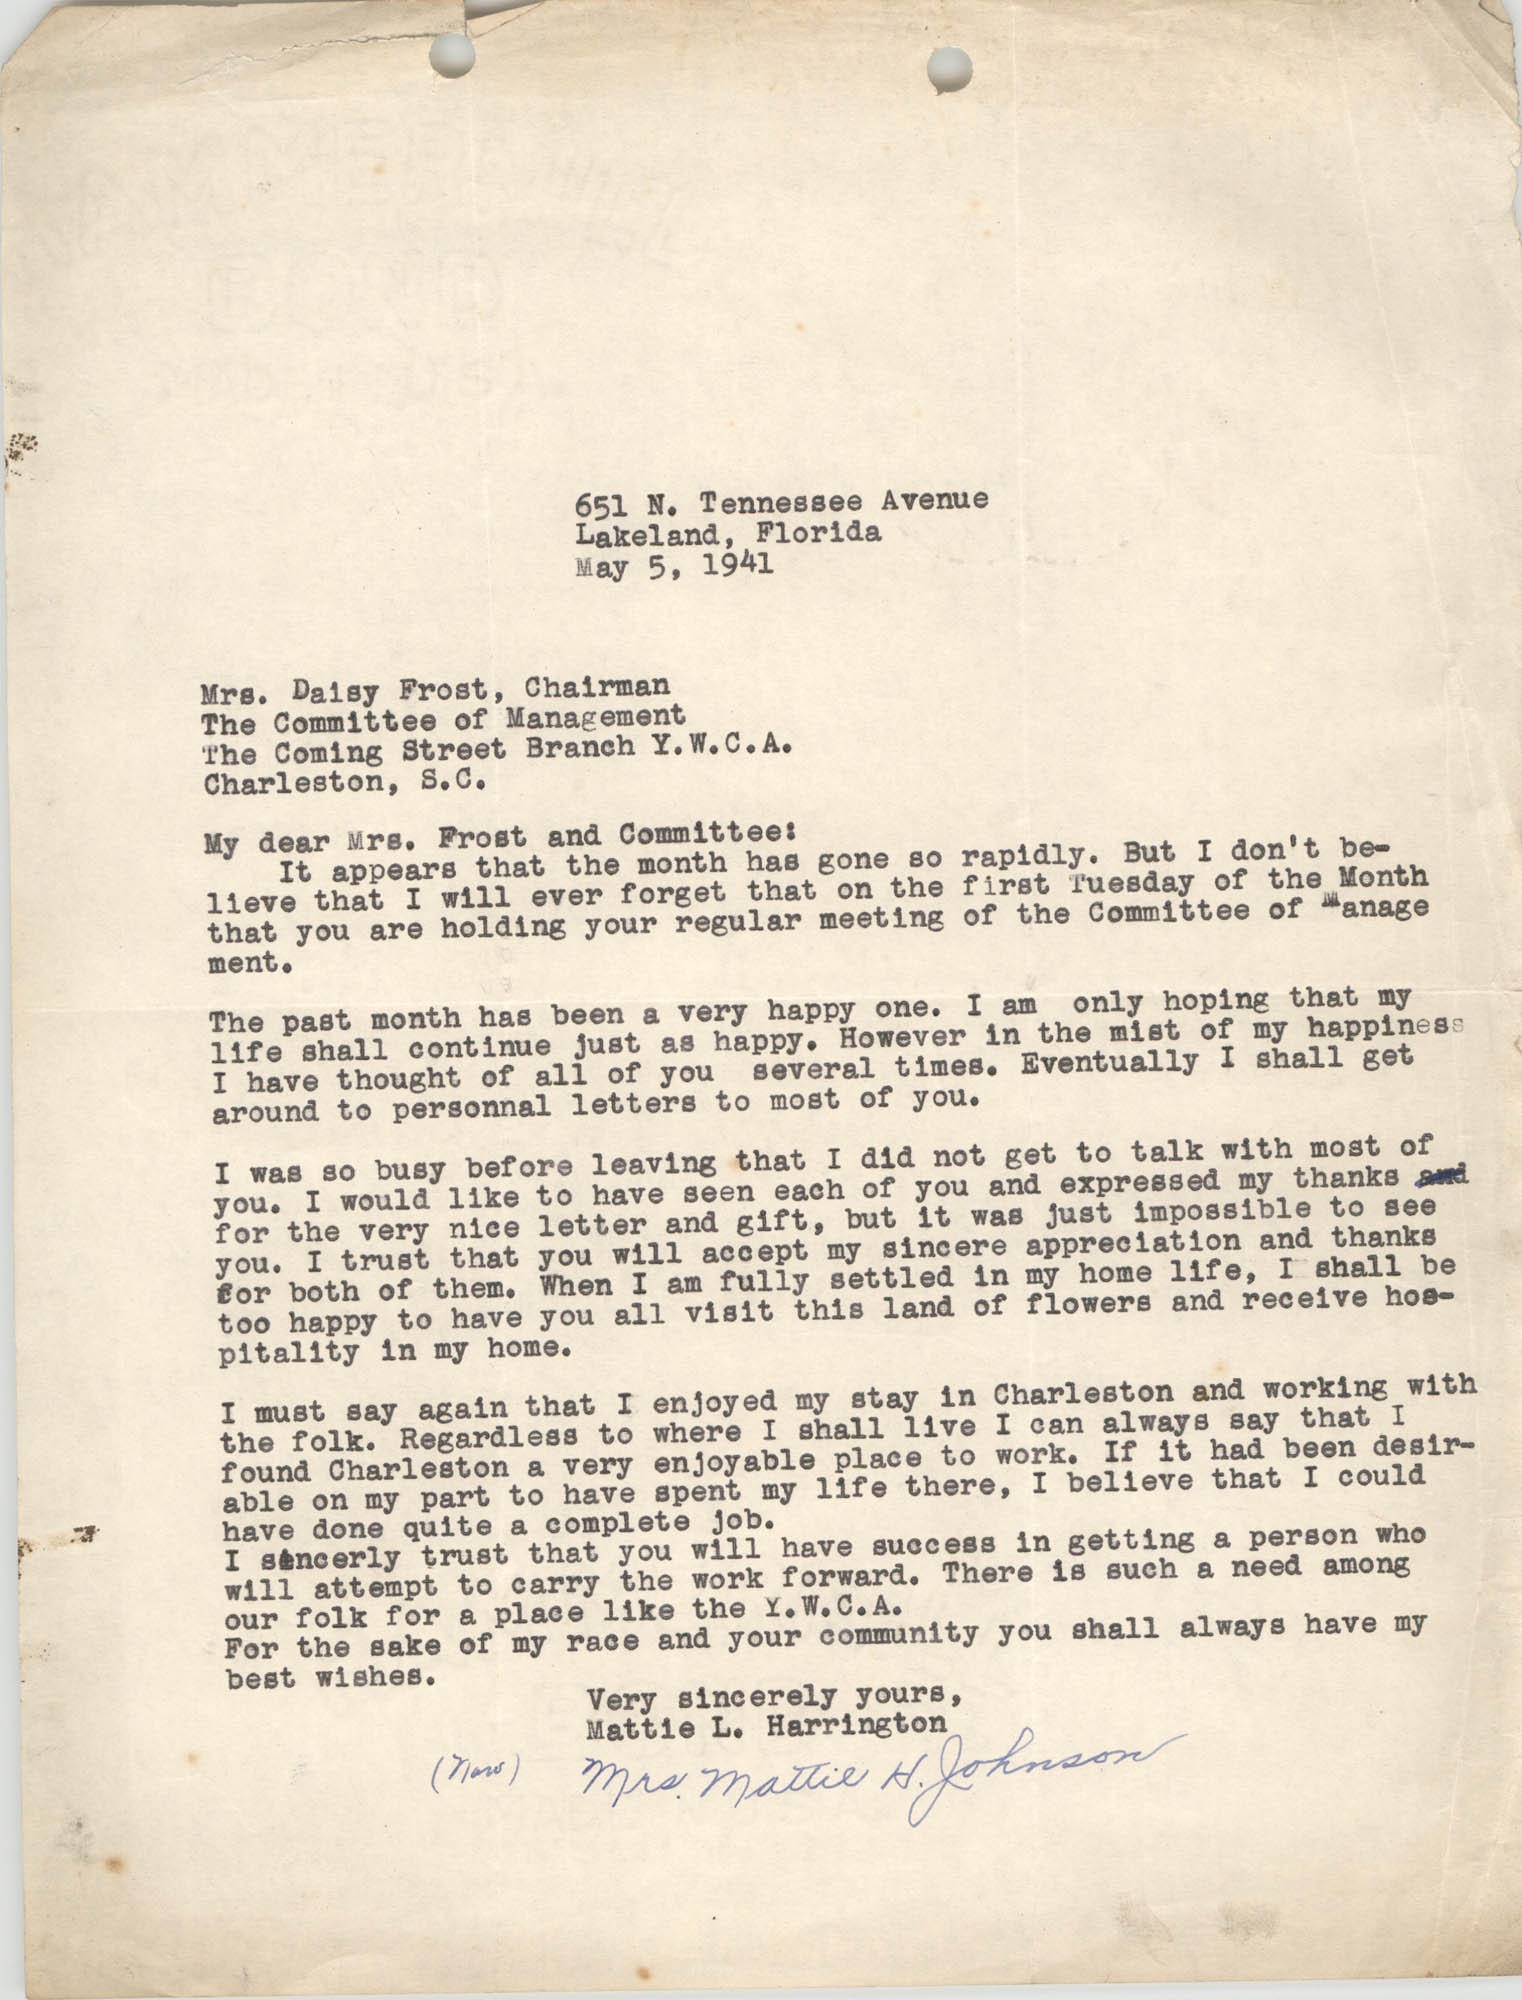 Letter from Mattie L. Harrington to Daisy Frost, May 5, 1941